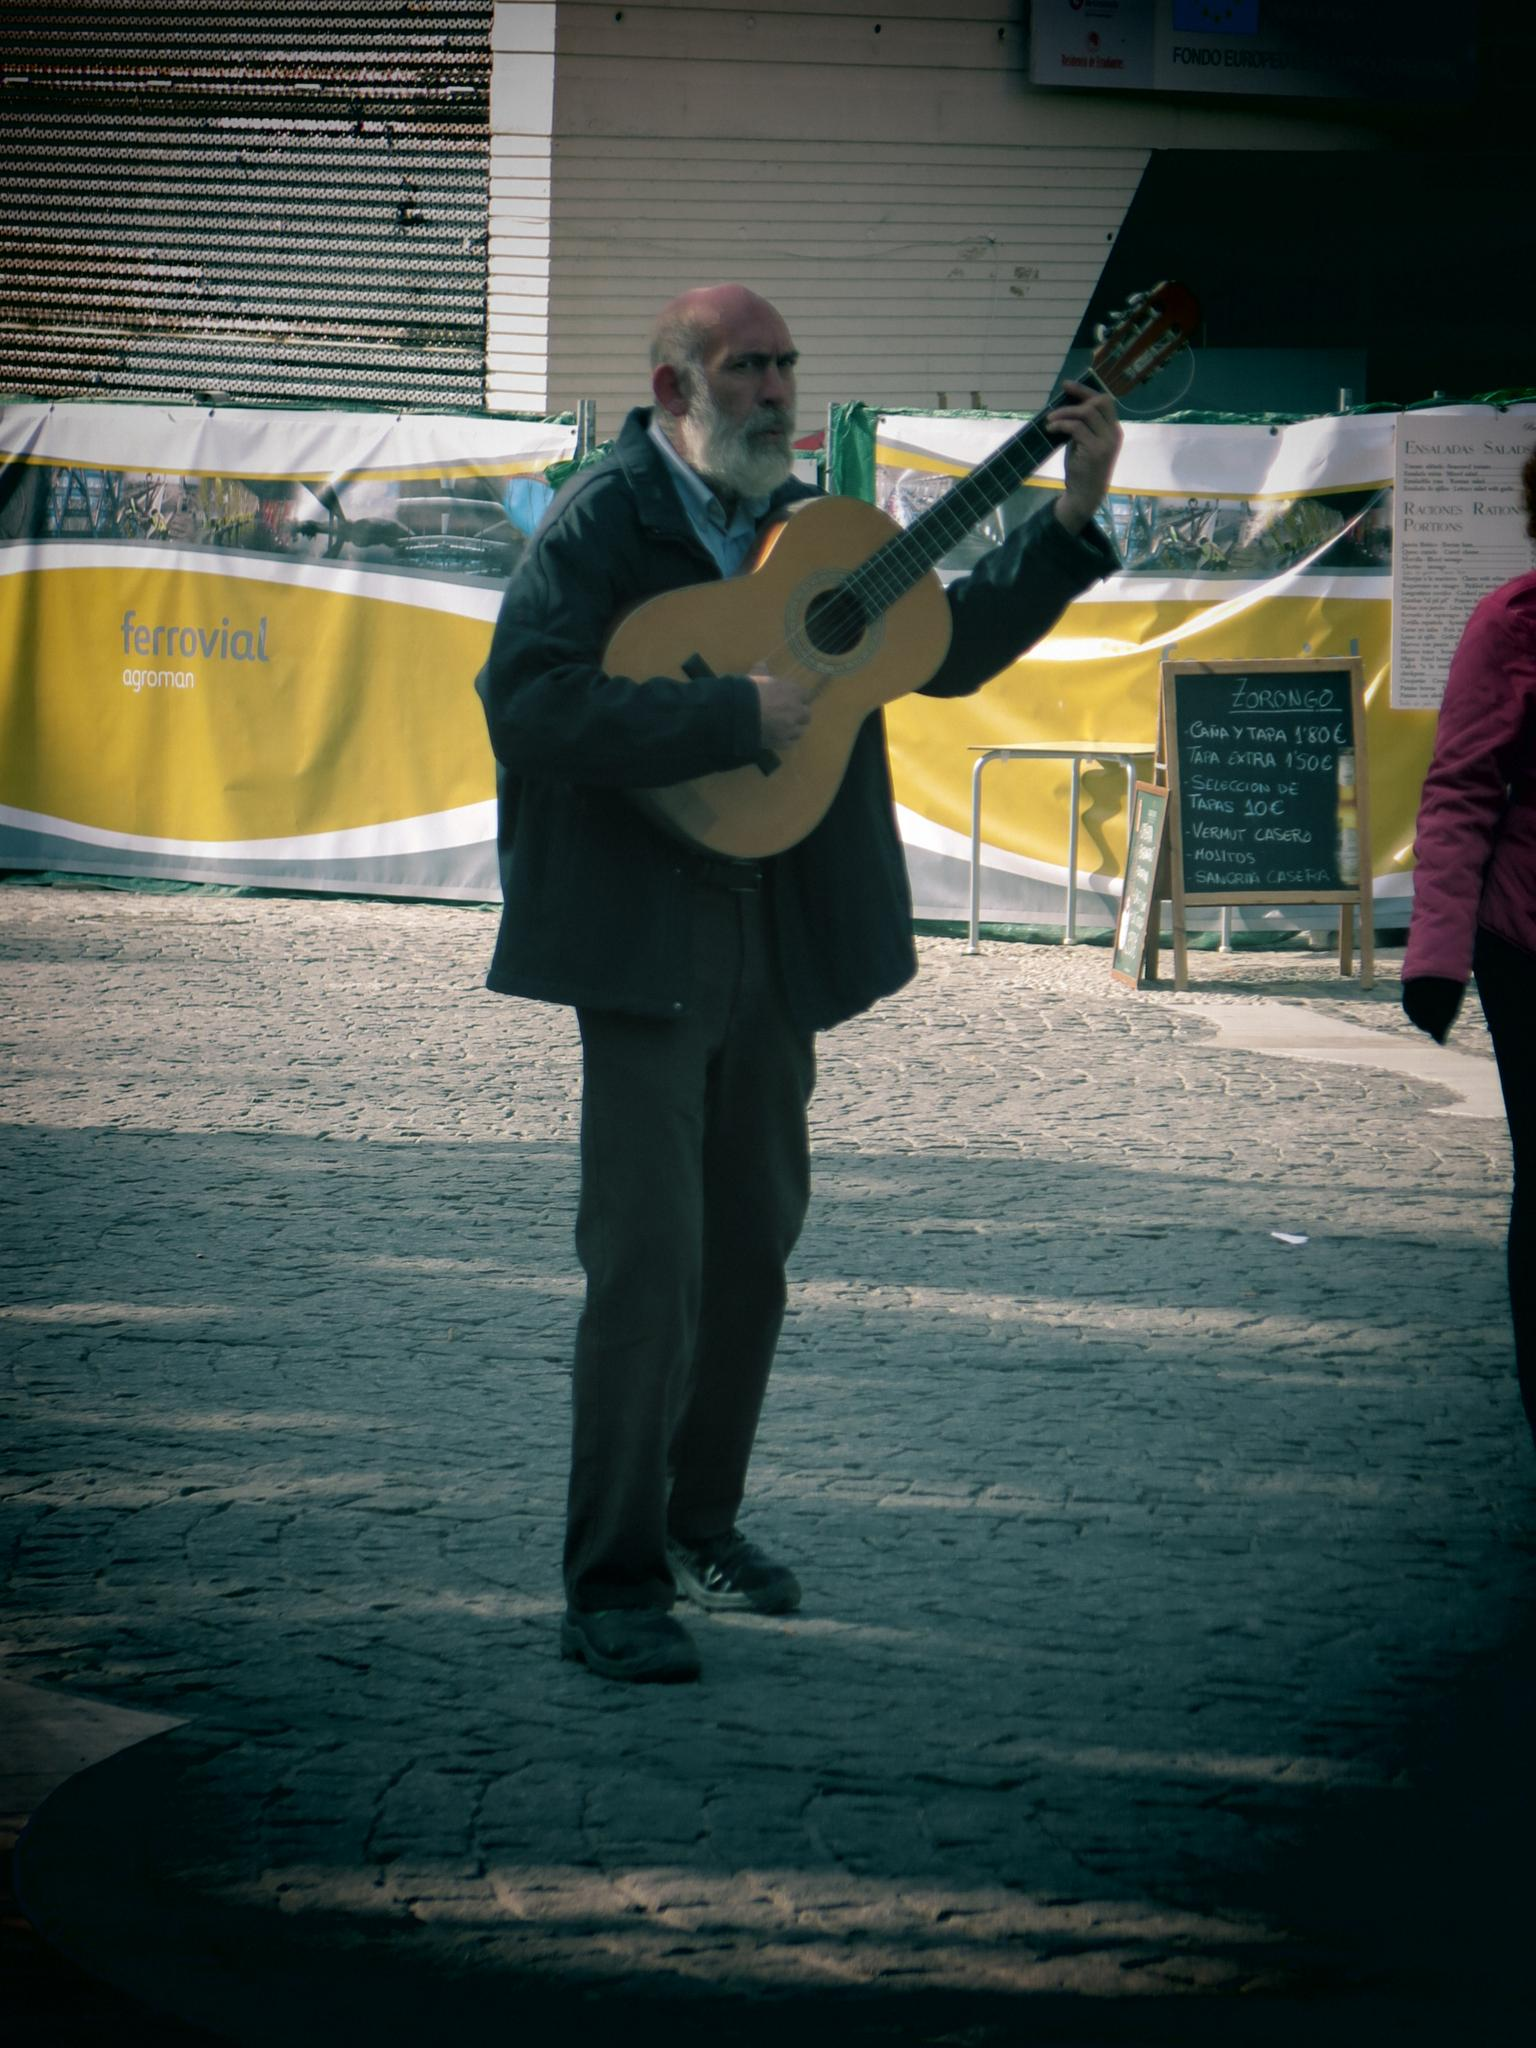 The Troubadour  by SteveR